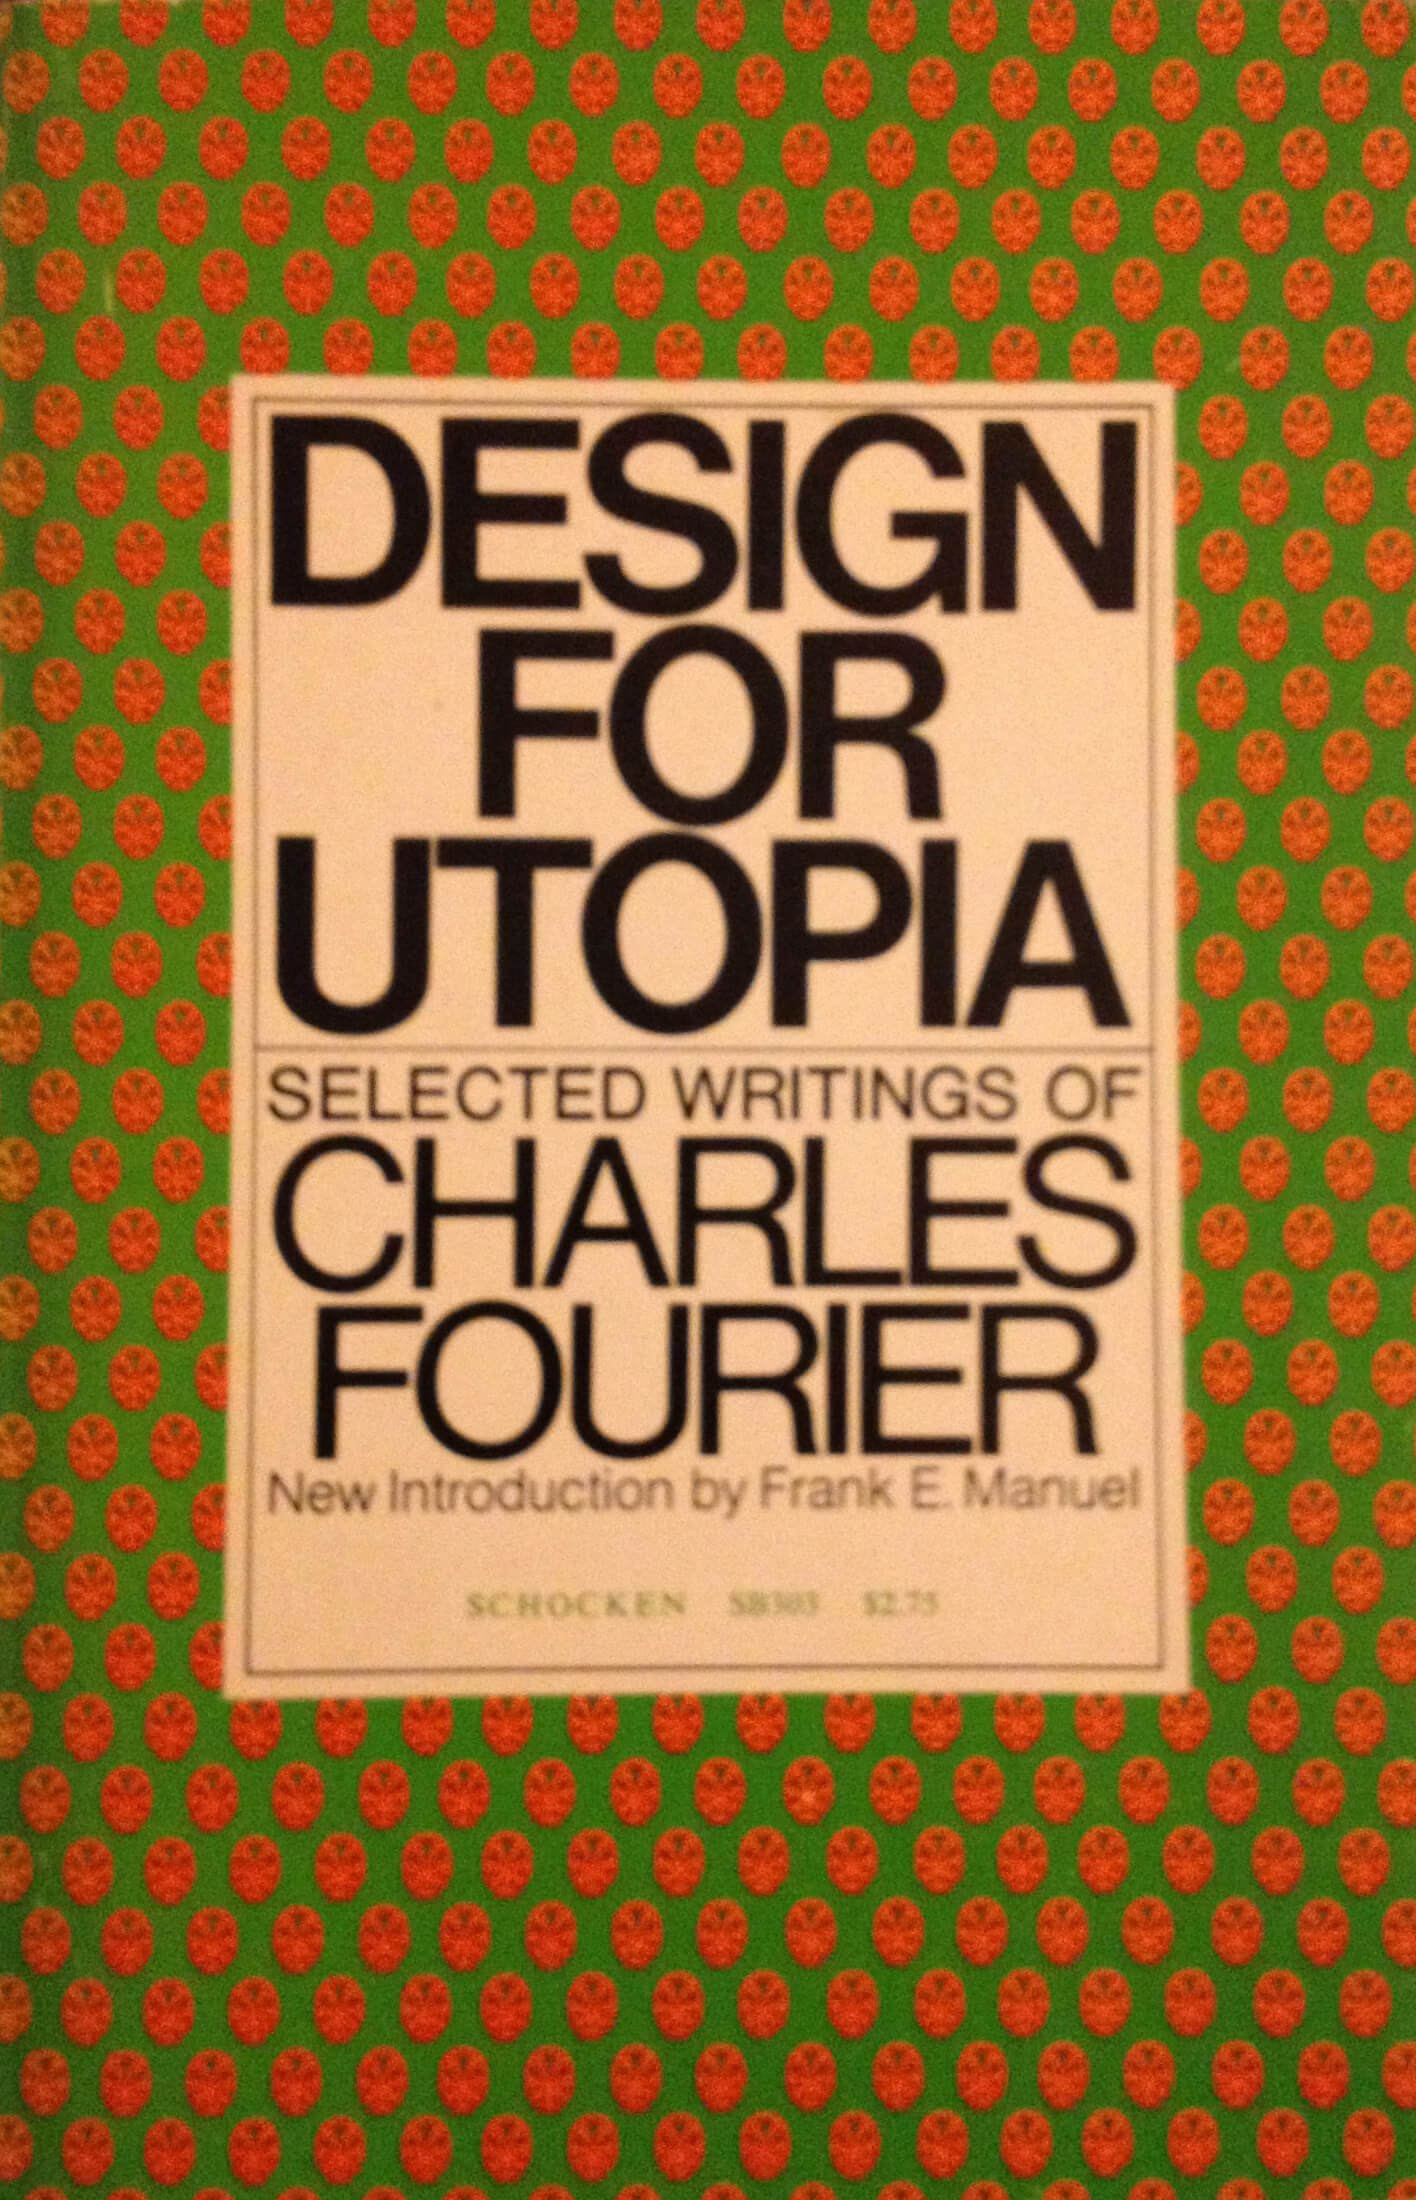 Design for Utopia.jpg